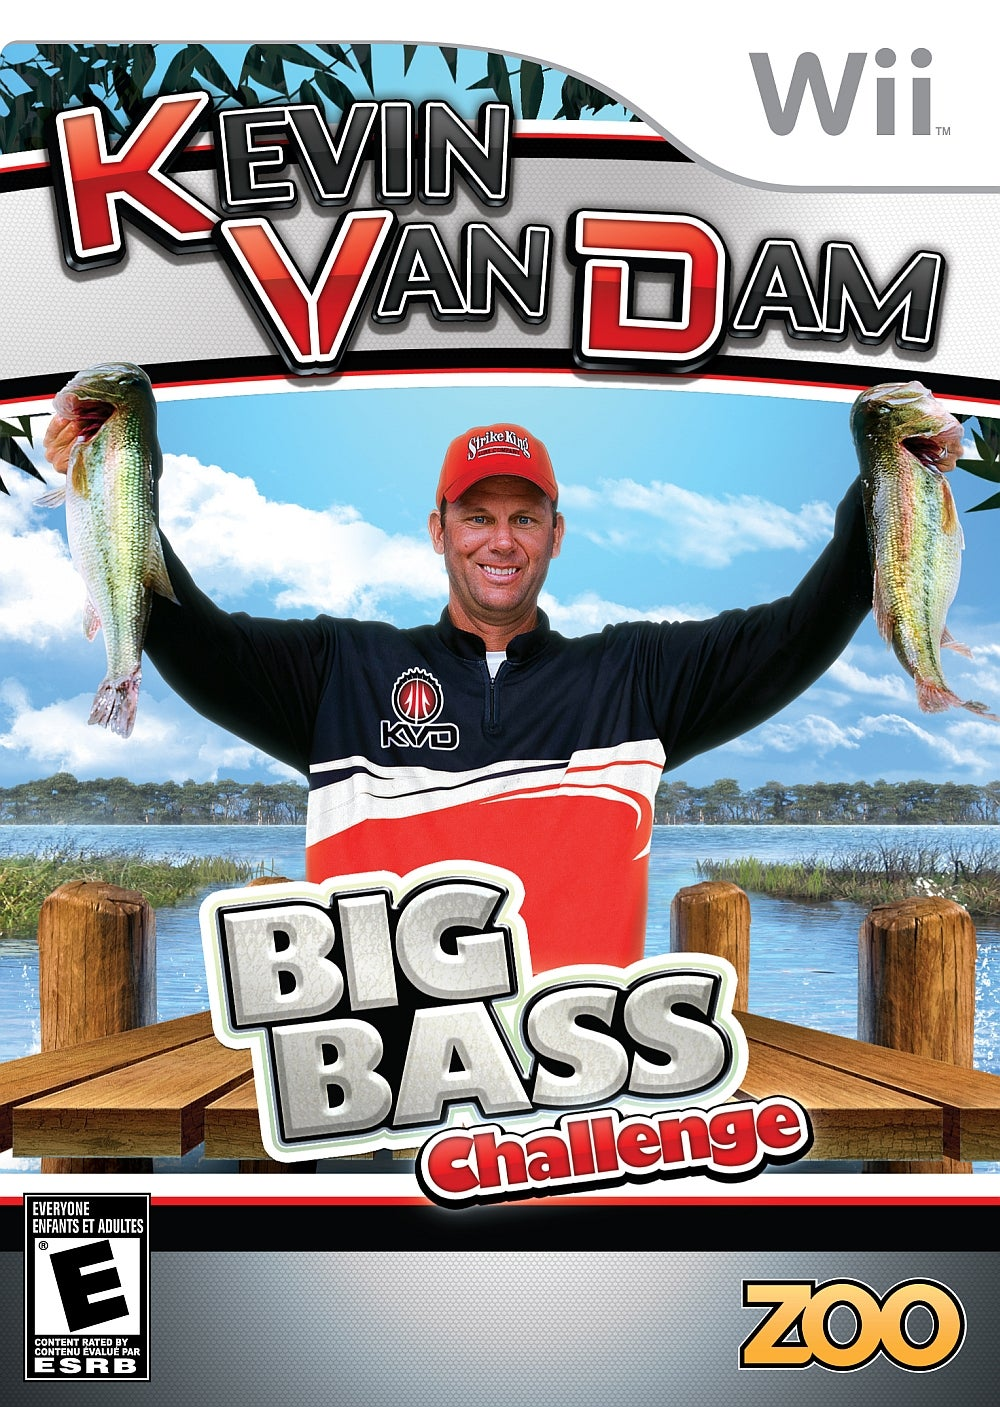 Kevin VanDams Big Bass Challenge Wii IGN